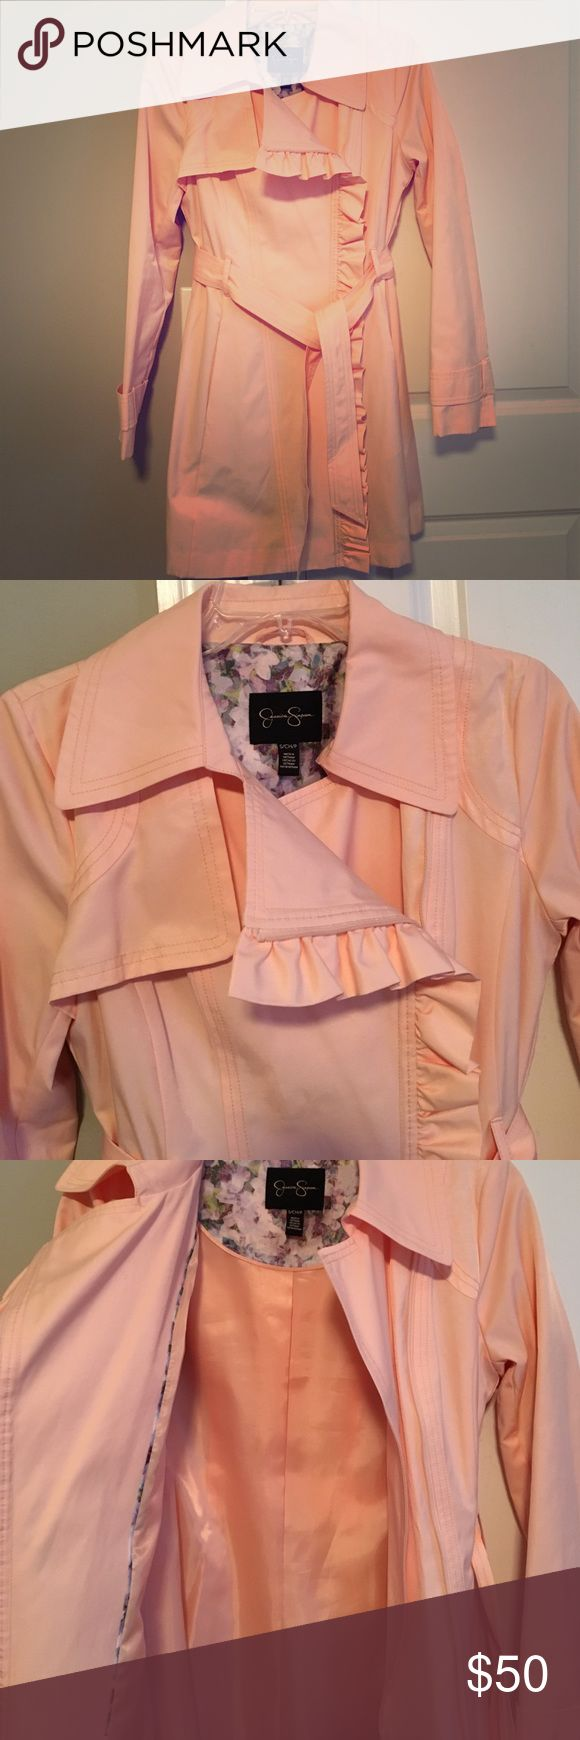 Jessica Simpson Ruffle Trench Coat Fun and Flirty Jessica Simpson Ruffle Trench Coat in a coral color. In great condition! Perfect for spring!    *comes from pet and smoke free home* Jessica Simpson Jackets & Coats Trench Coats